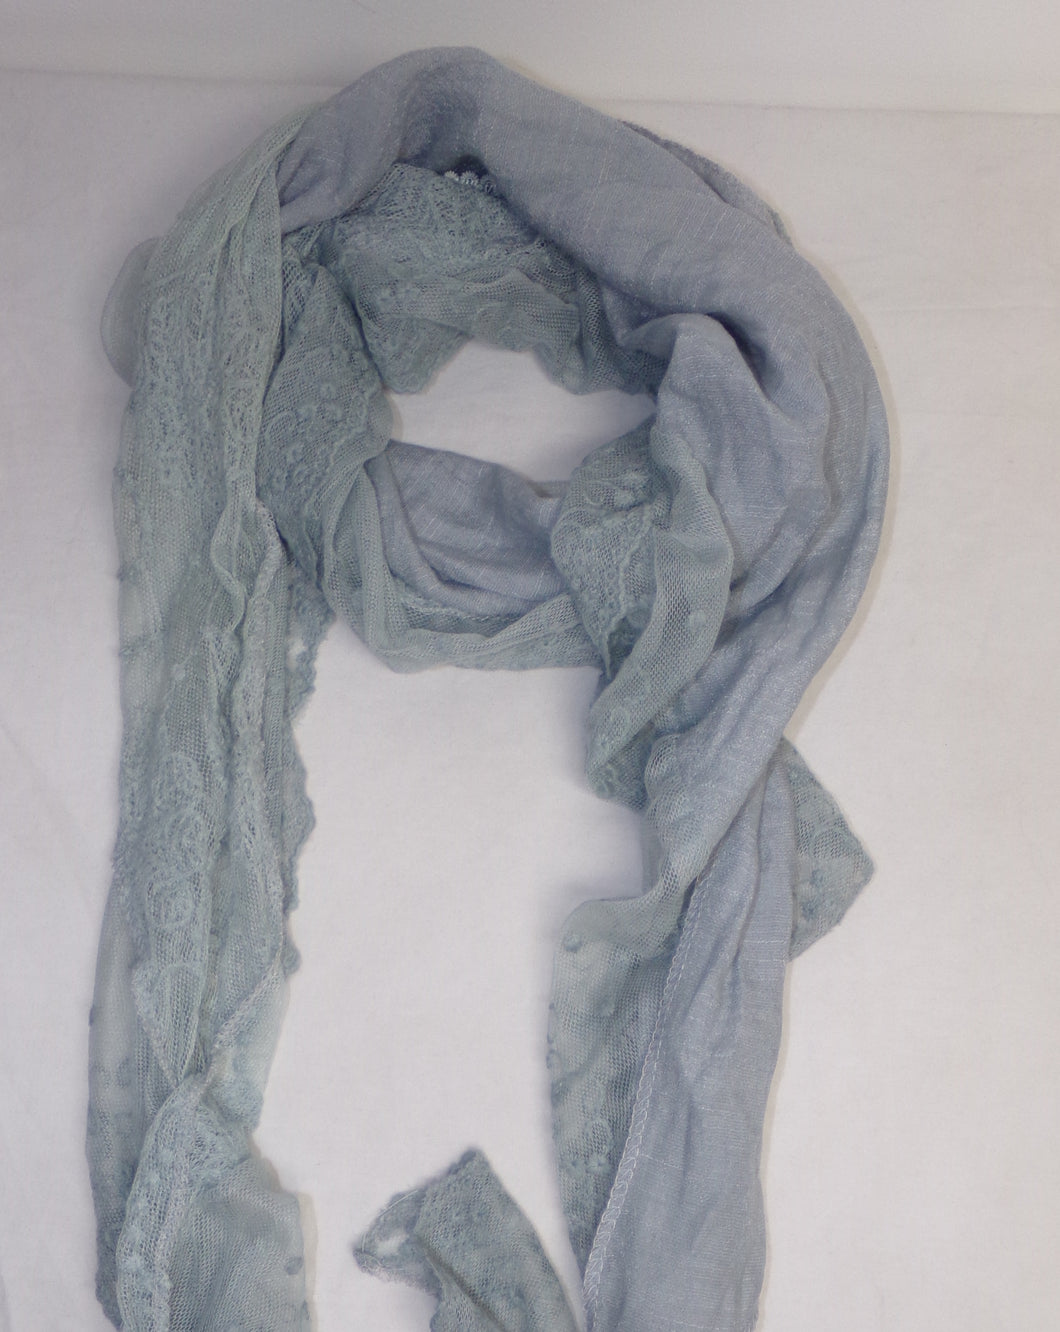 A  scarf with a teal colour finish. A plain and lace effect pattern provide a delicate and feminine finish.  A lightweight versatile accessory to the wardrobe that would compliment a top, dress, coat or jacket.